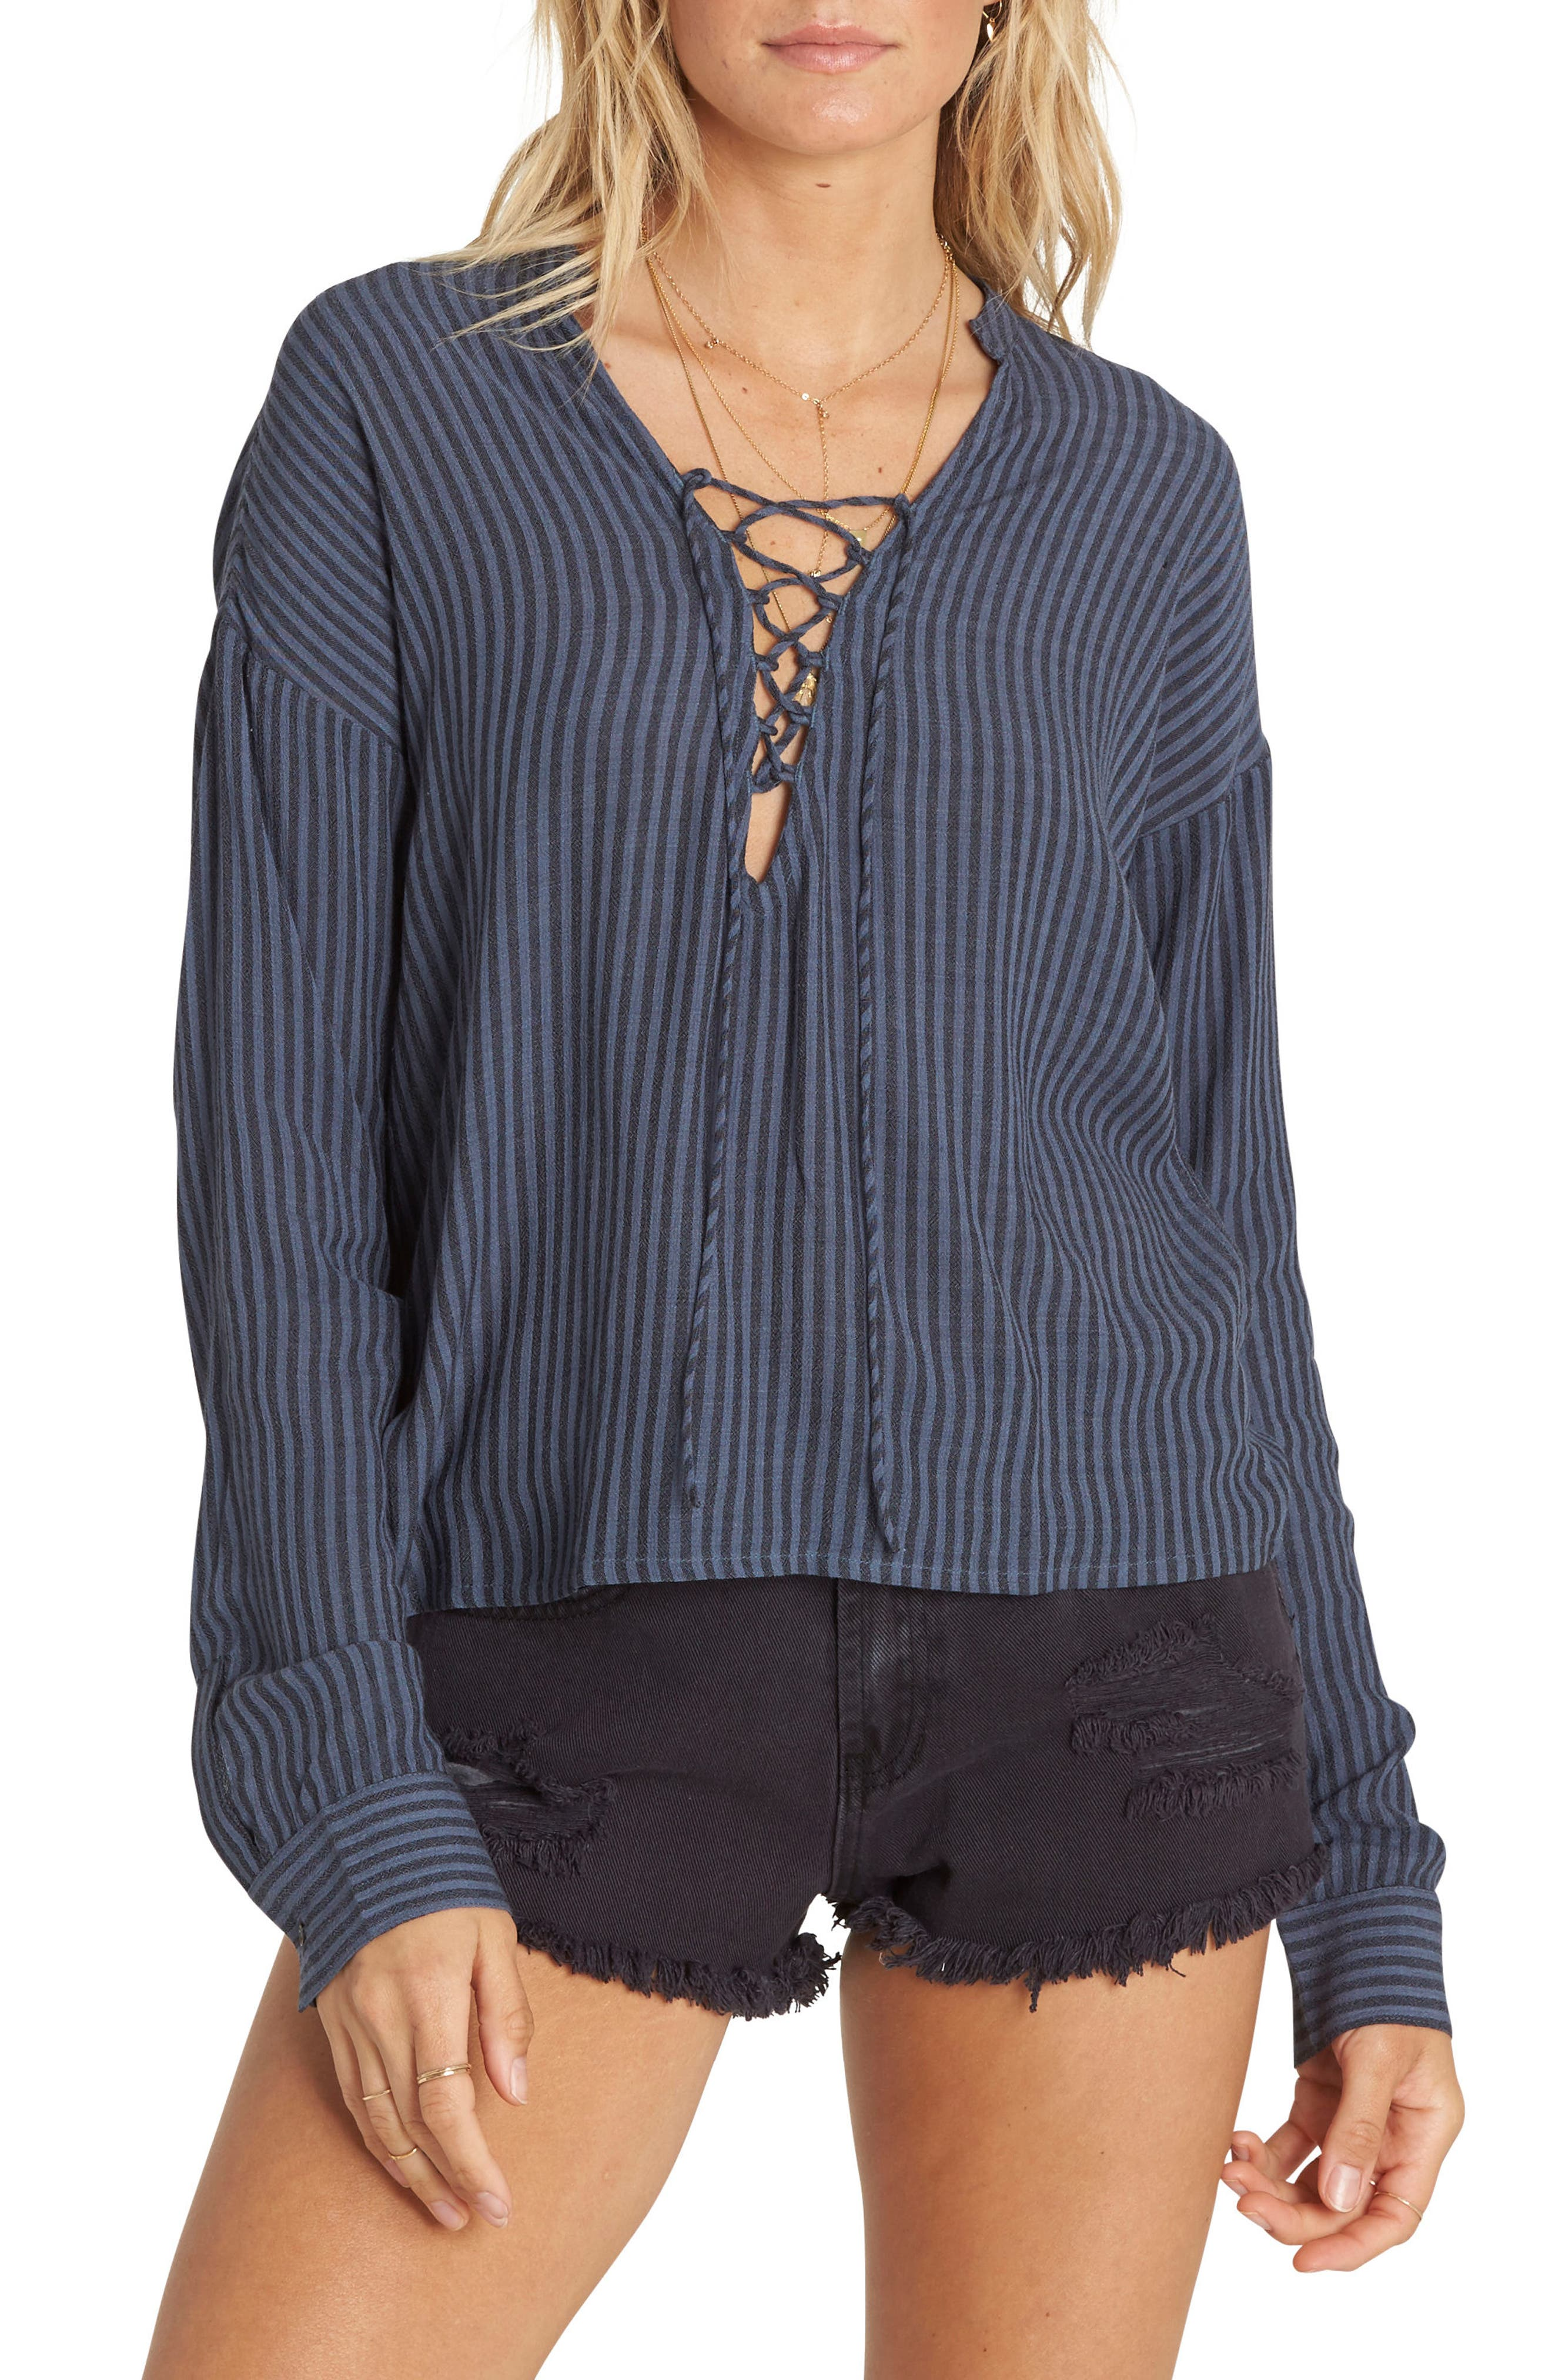 Finding Happiness Lace Up Top,                         Main,                         color, Deep Sea